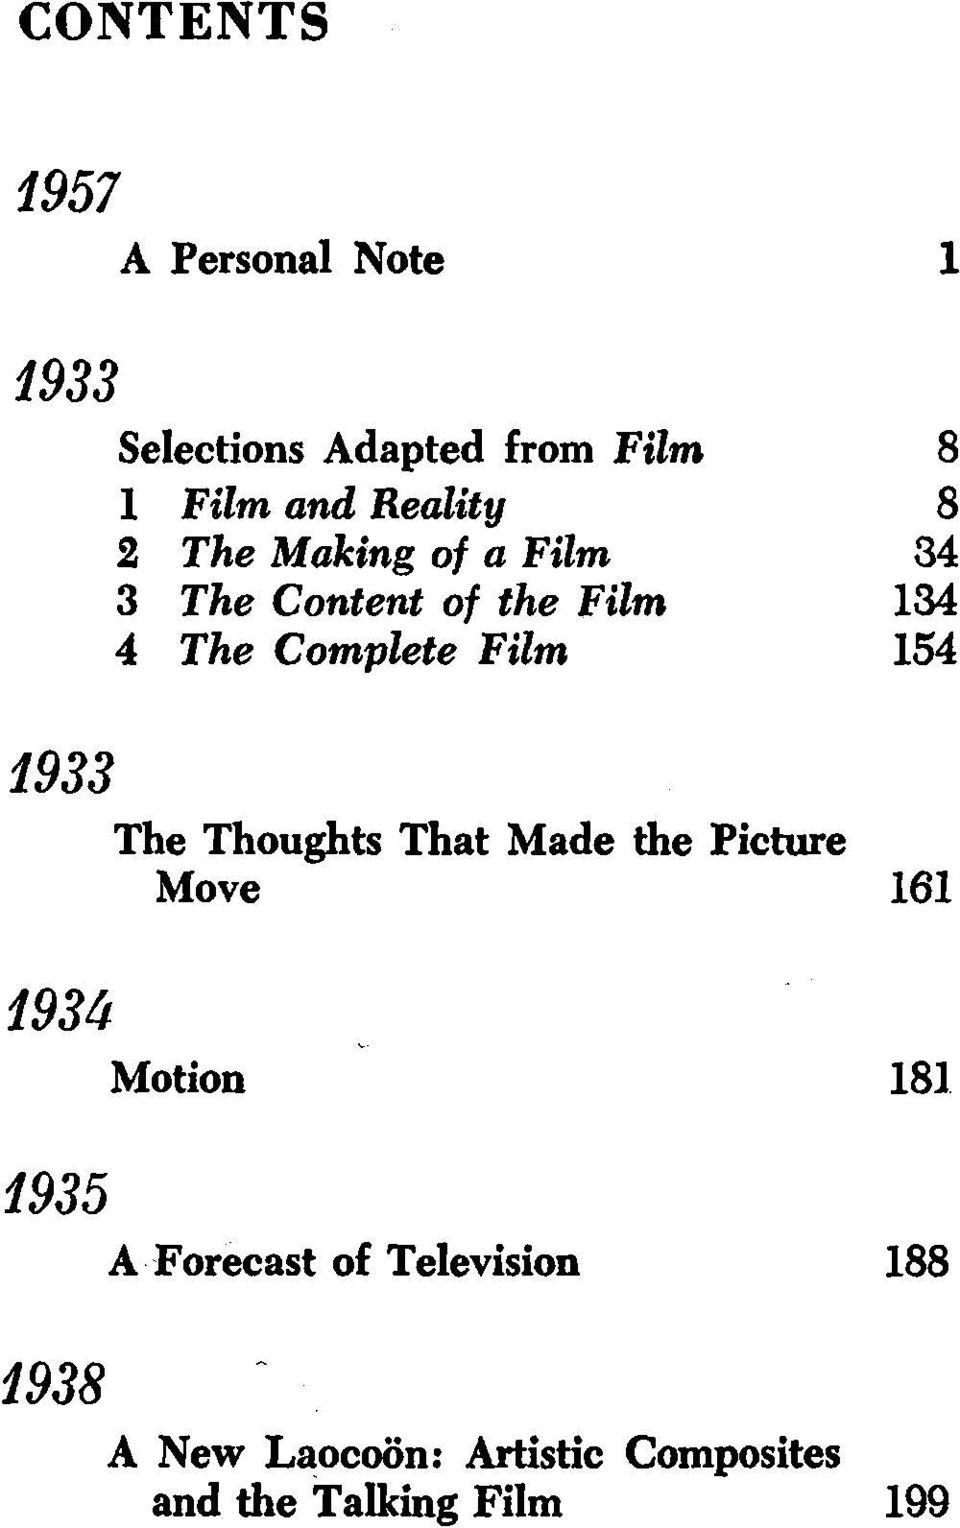 Film 154 1933 The Thoughts That Made the Picture Move 161 193U Motion 181 1935 A